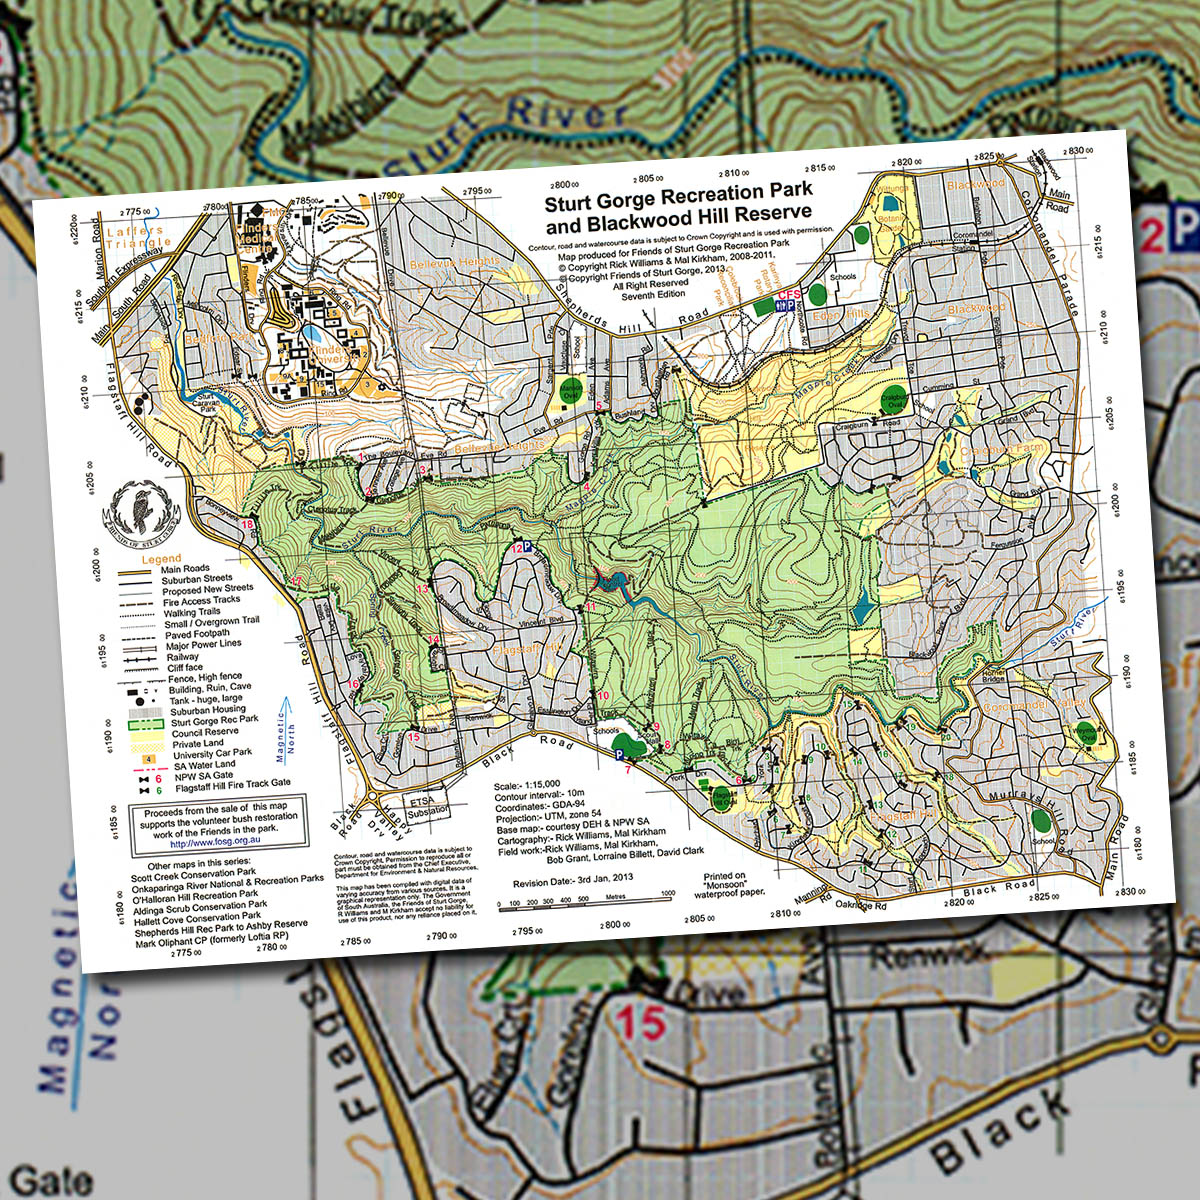 Sturt Gorge Recreation Map and Blackwood Hill Reserve topographic